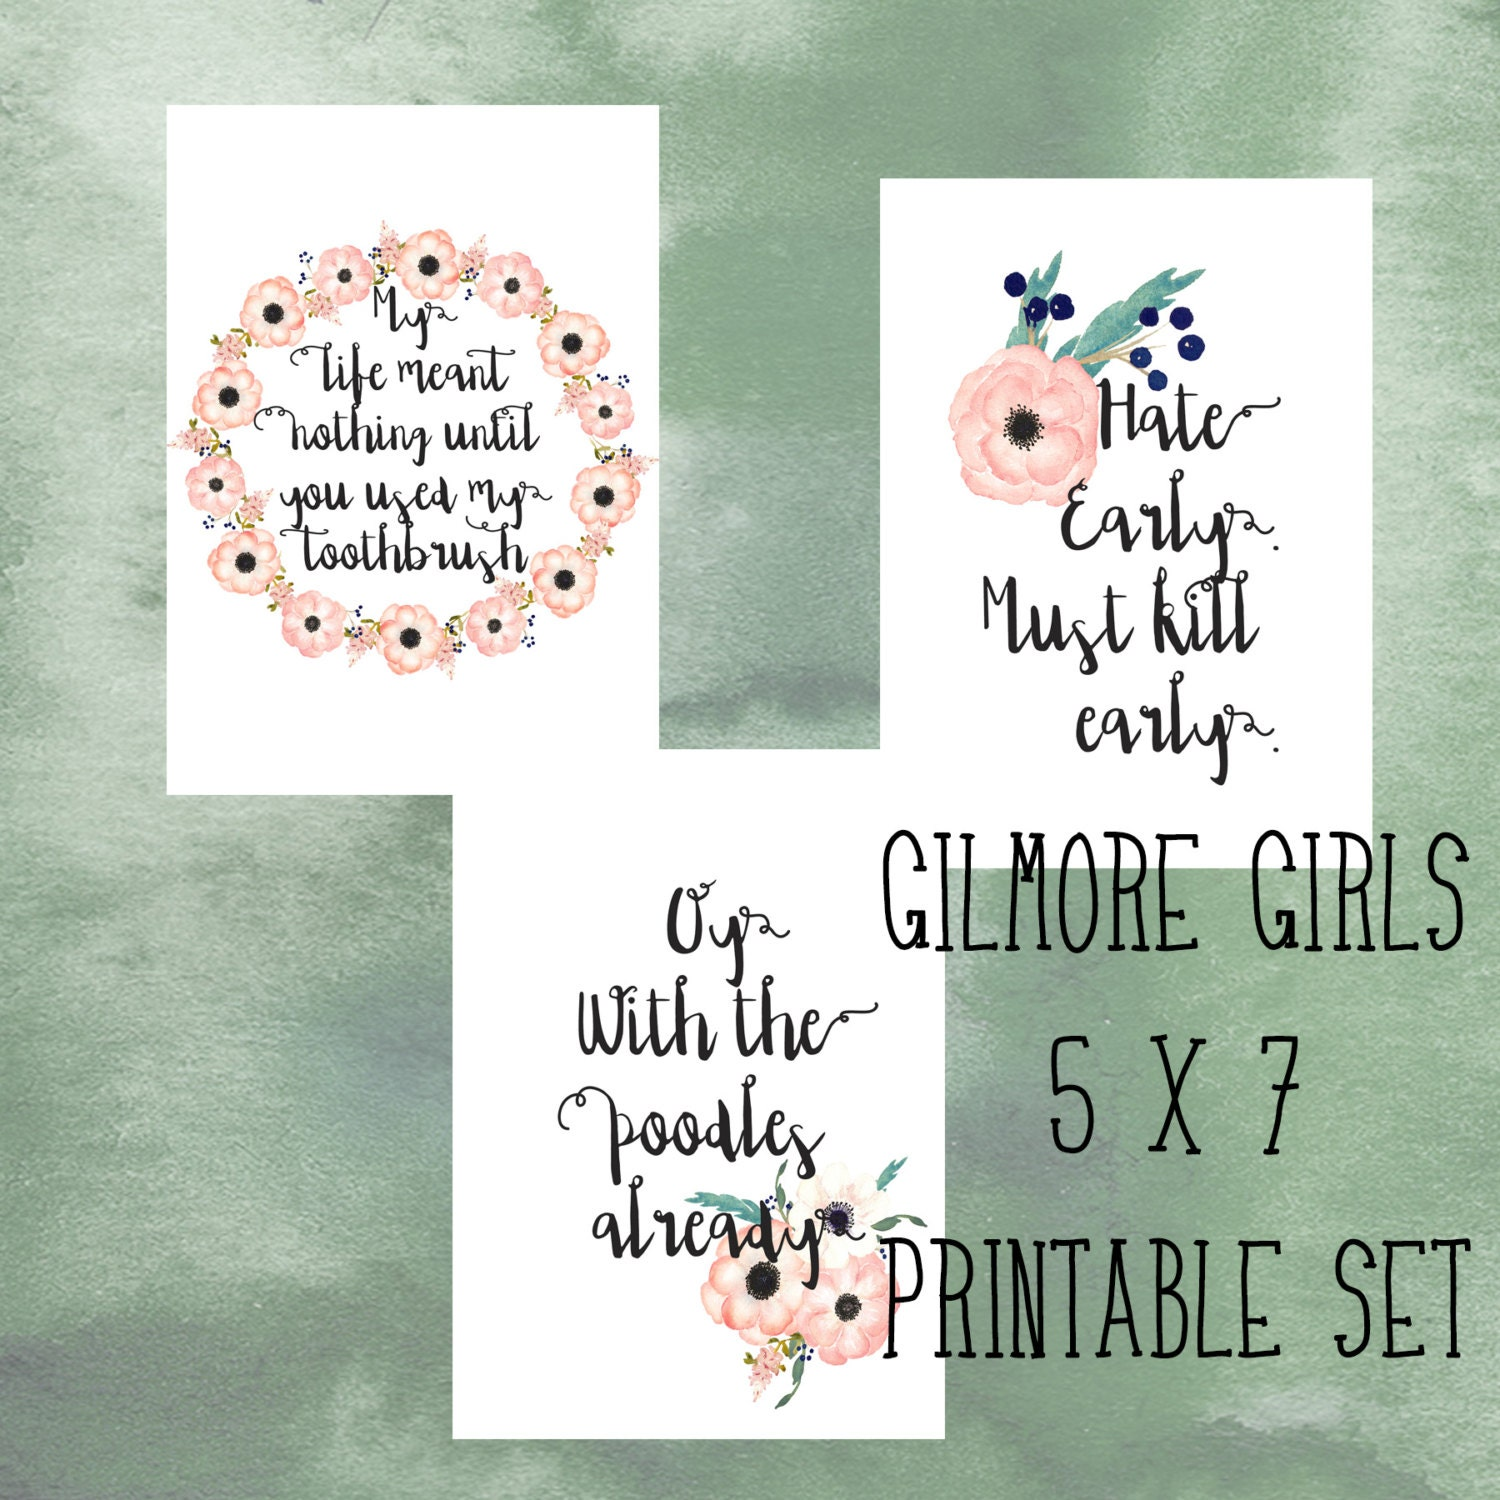 Gilmore Girls Quotes Stars Hollow I wish I lived in Stars |Gilmore Girls Sayings